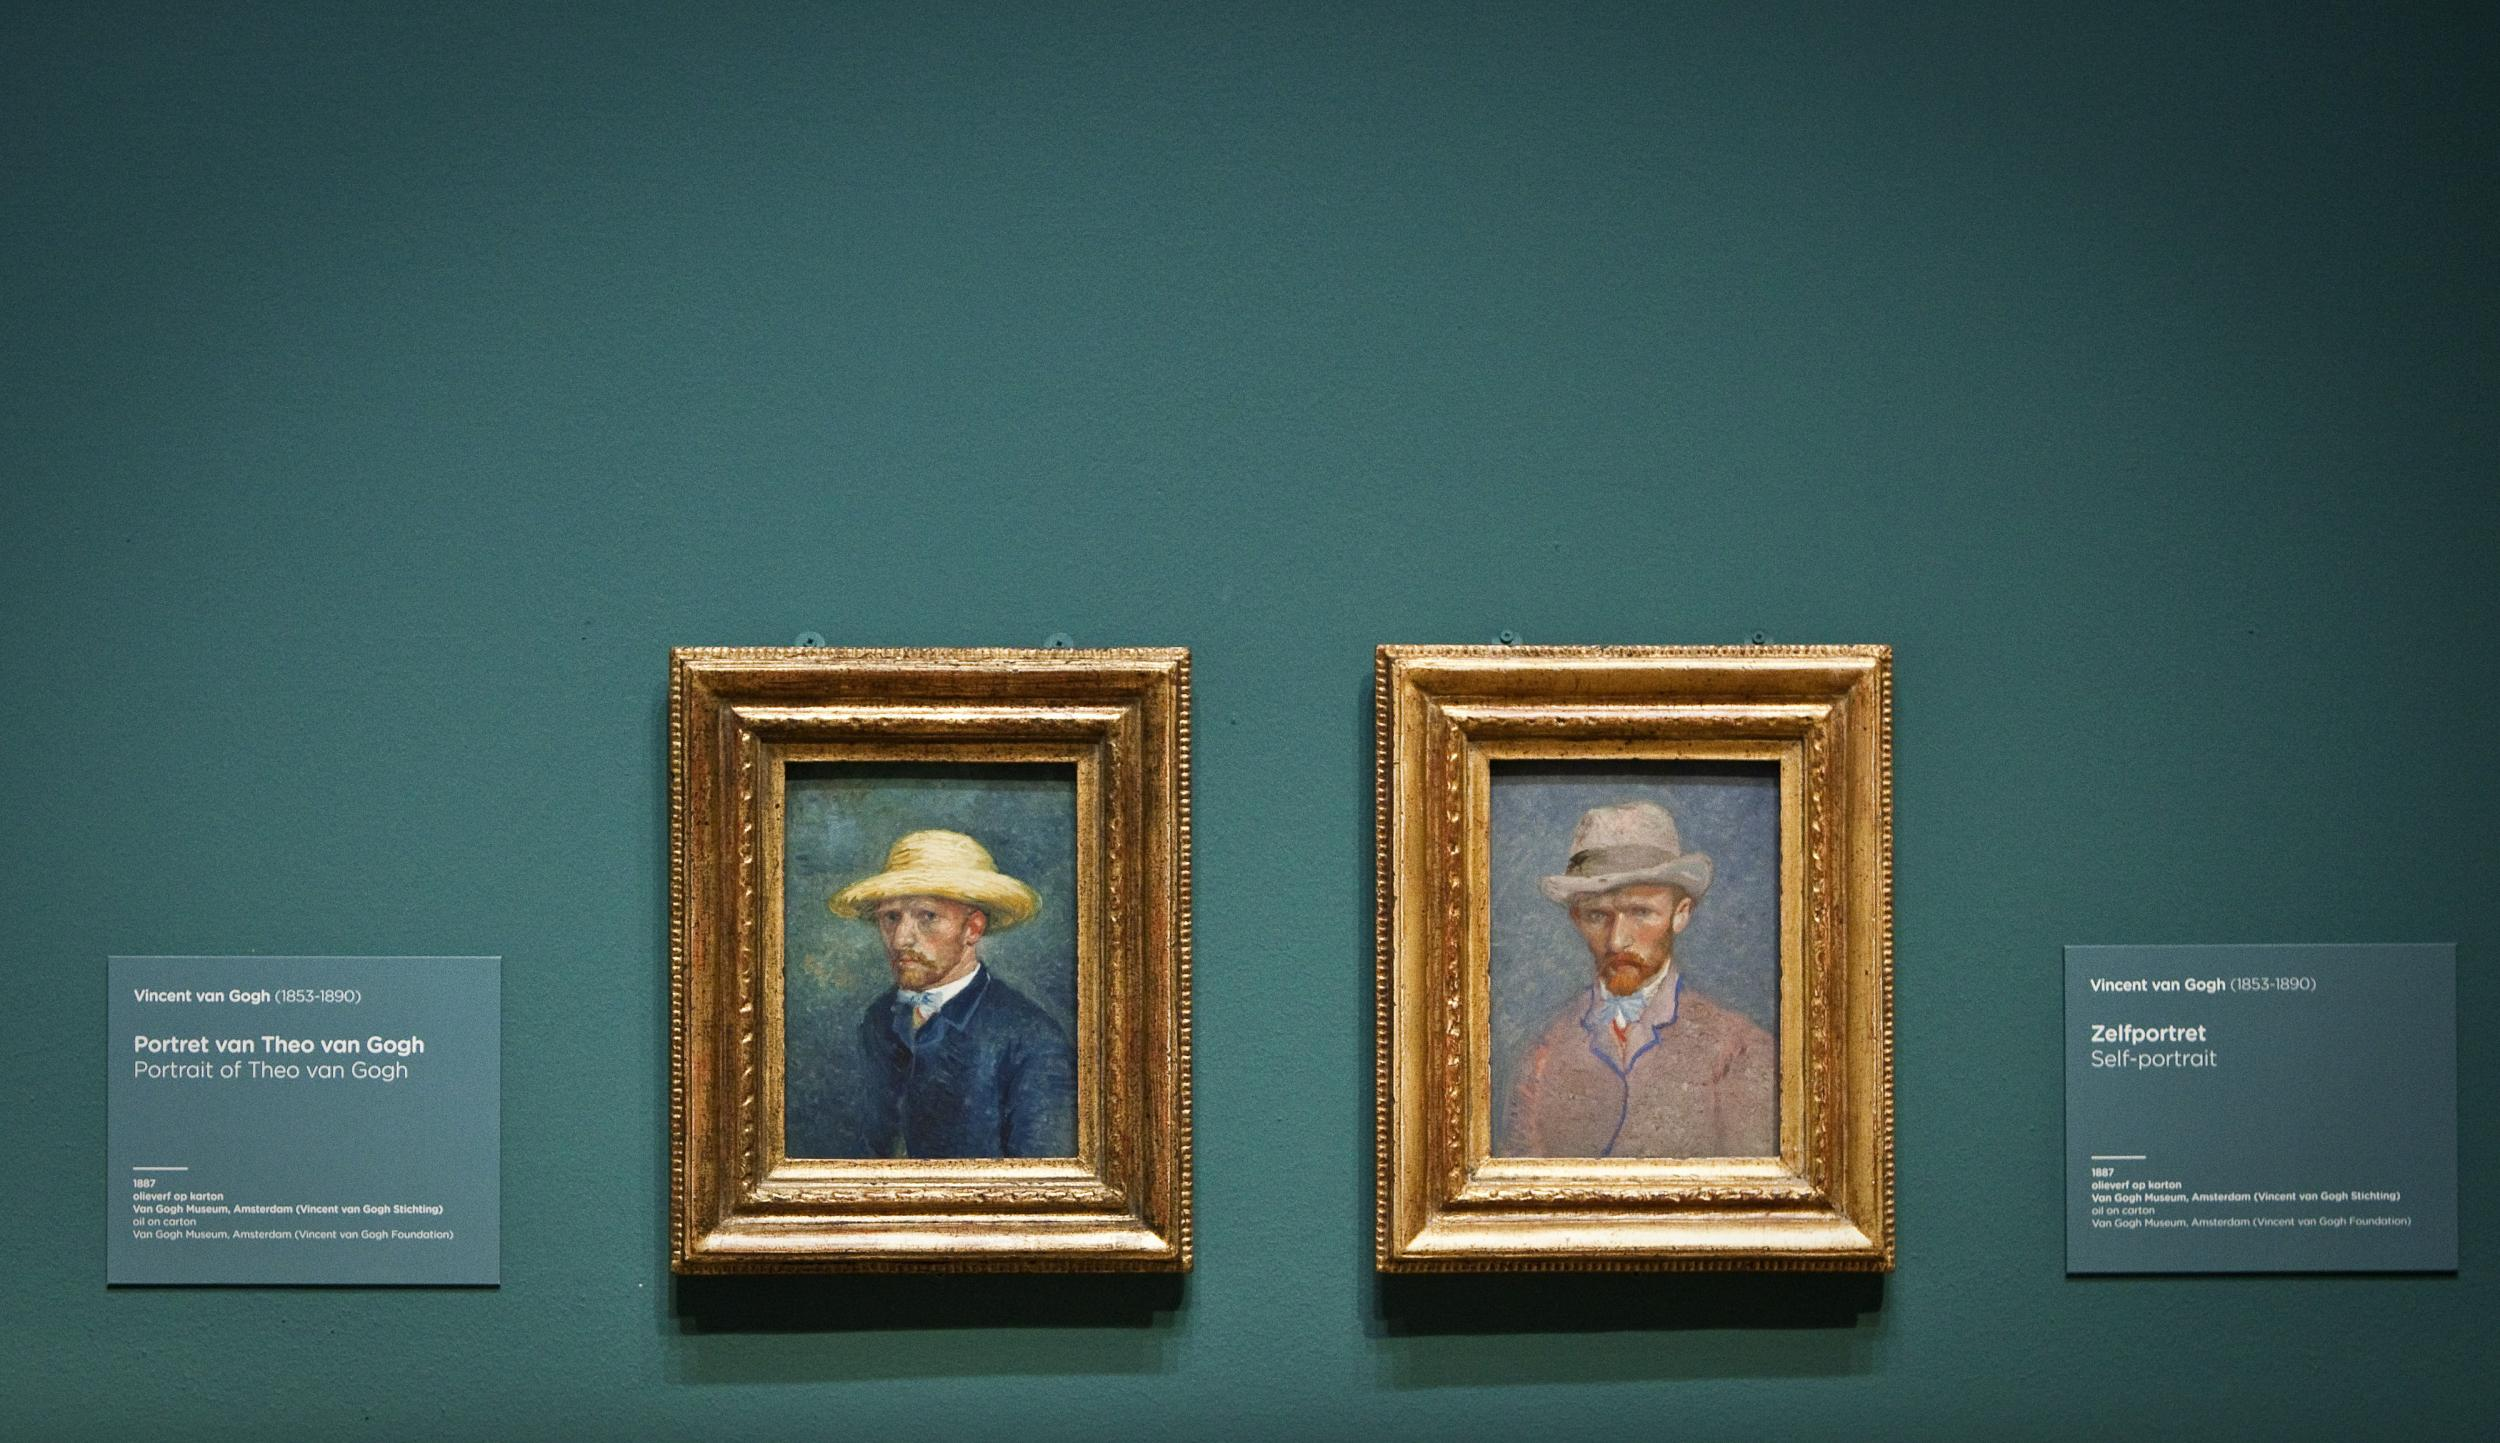 Van Gogh paintings to be scored with trance | The Independent